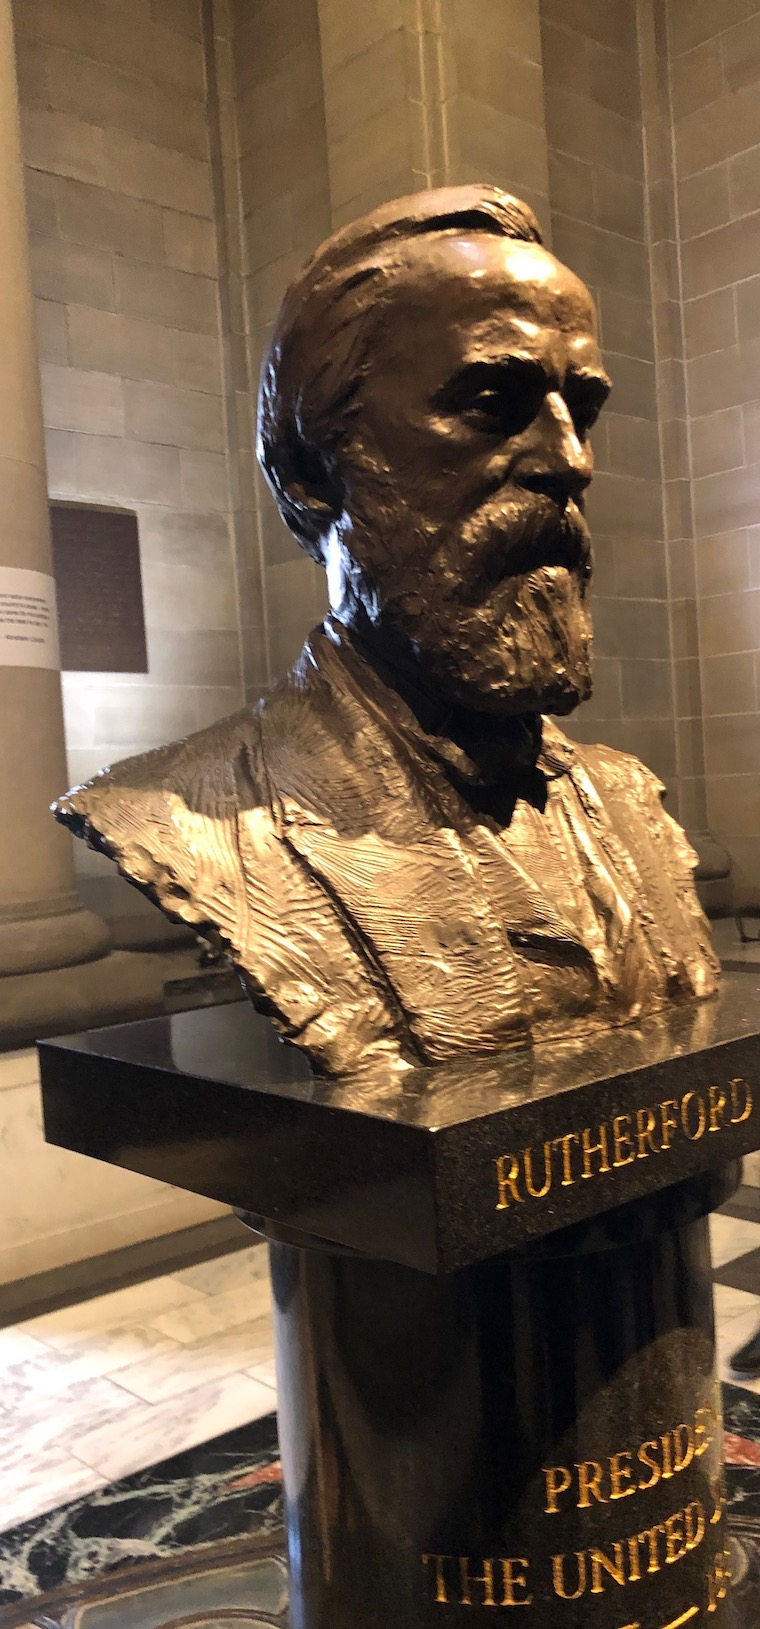 A photo of the bronze-colored bust of Hayes in the room that was the original museum.